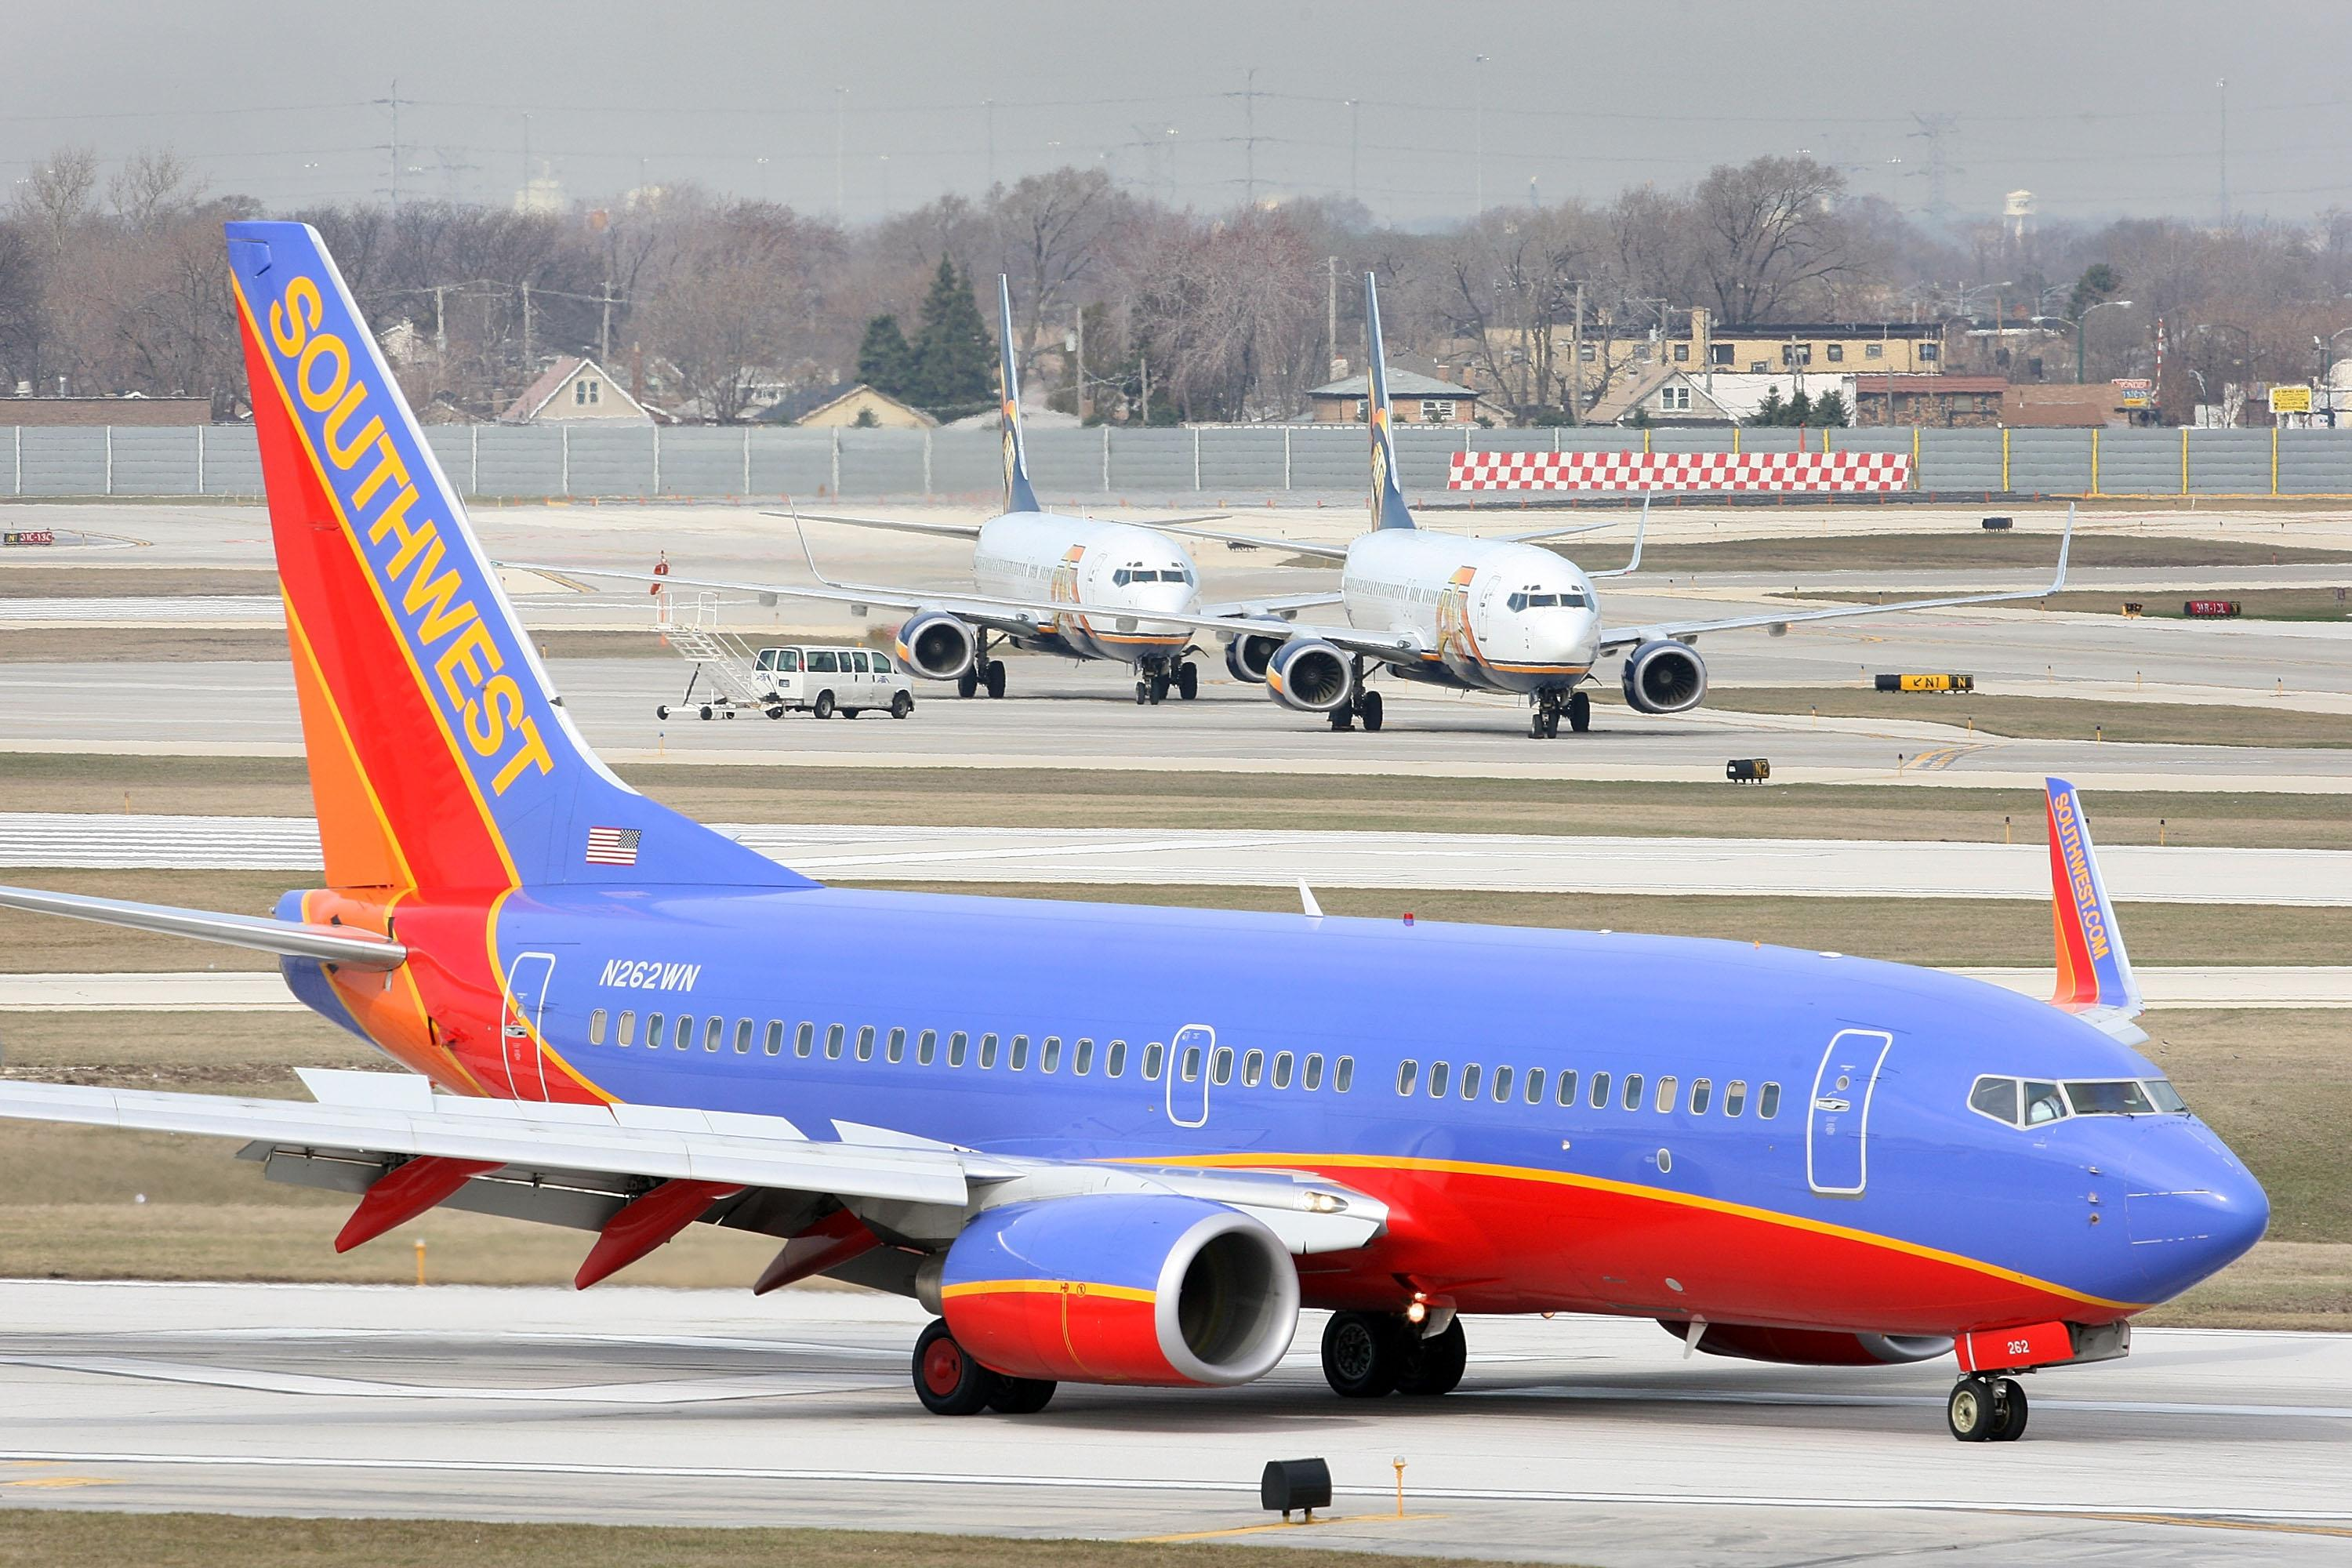 Southwest 737 diverts to Albuquerque after 'unusual smell' in cabin